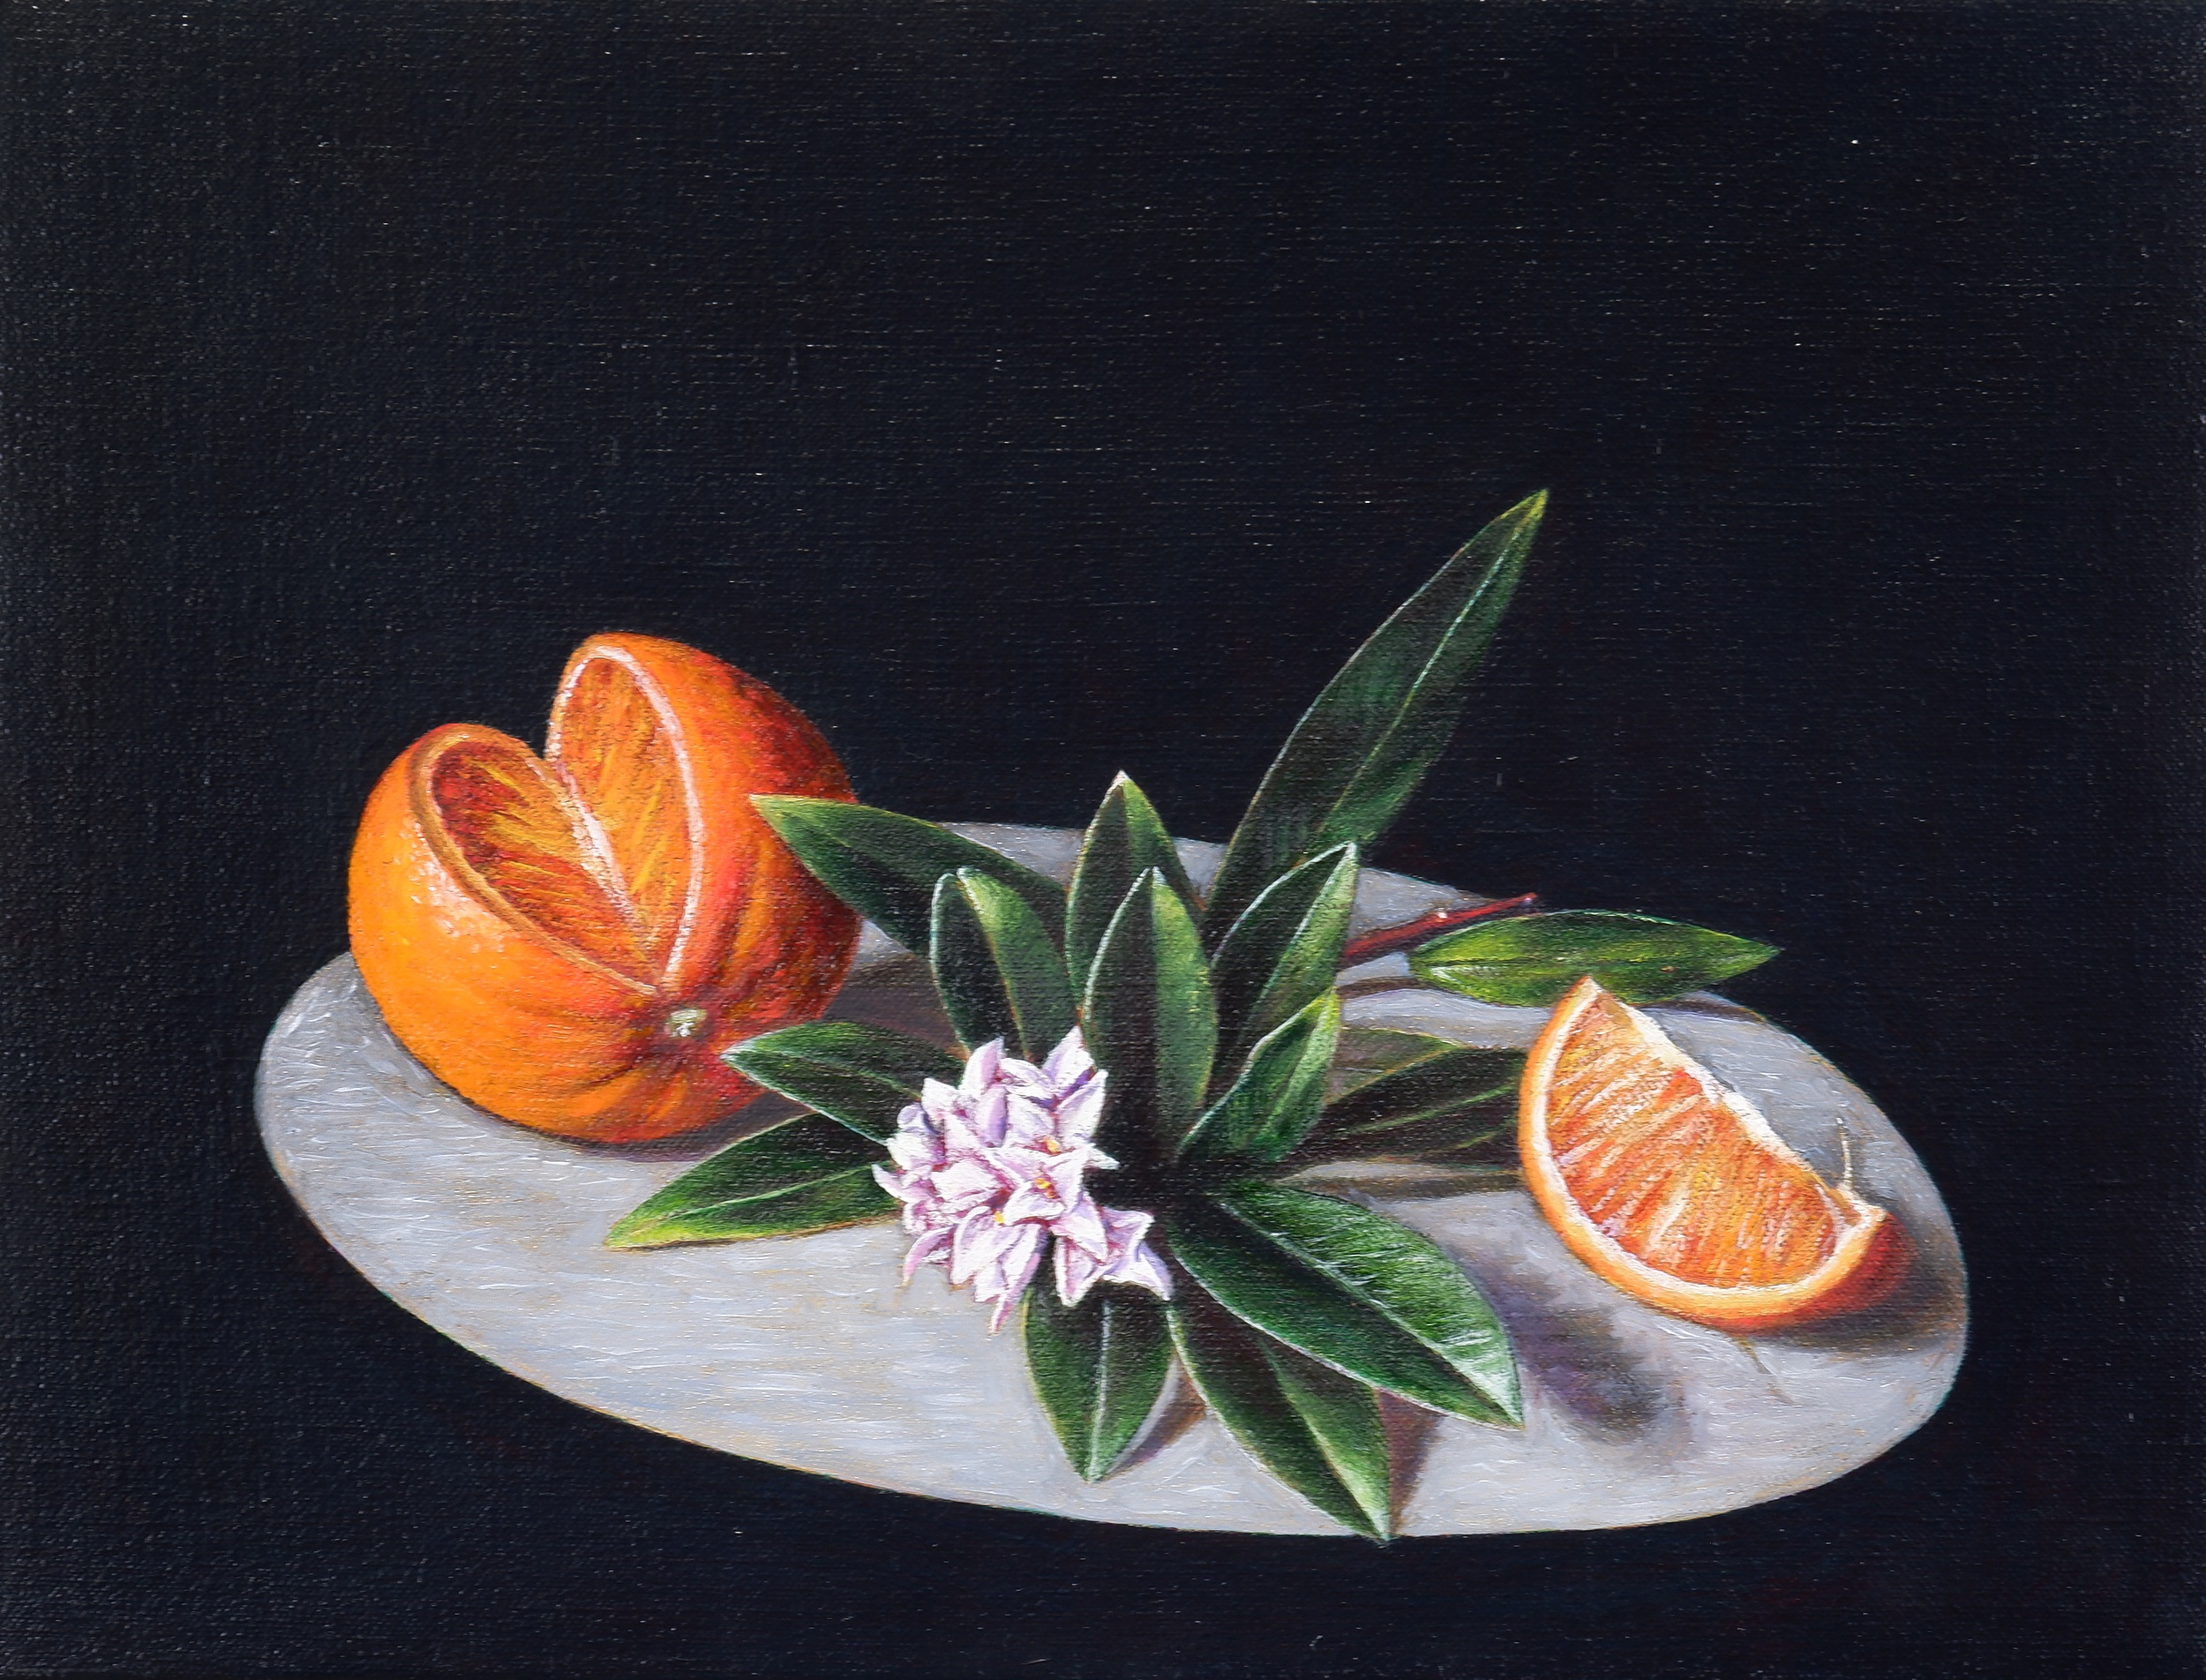 'Christopher Beaumont (born 1961), Daphne and Orange 2004, Oil on Canvas'